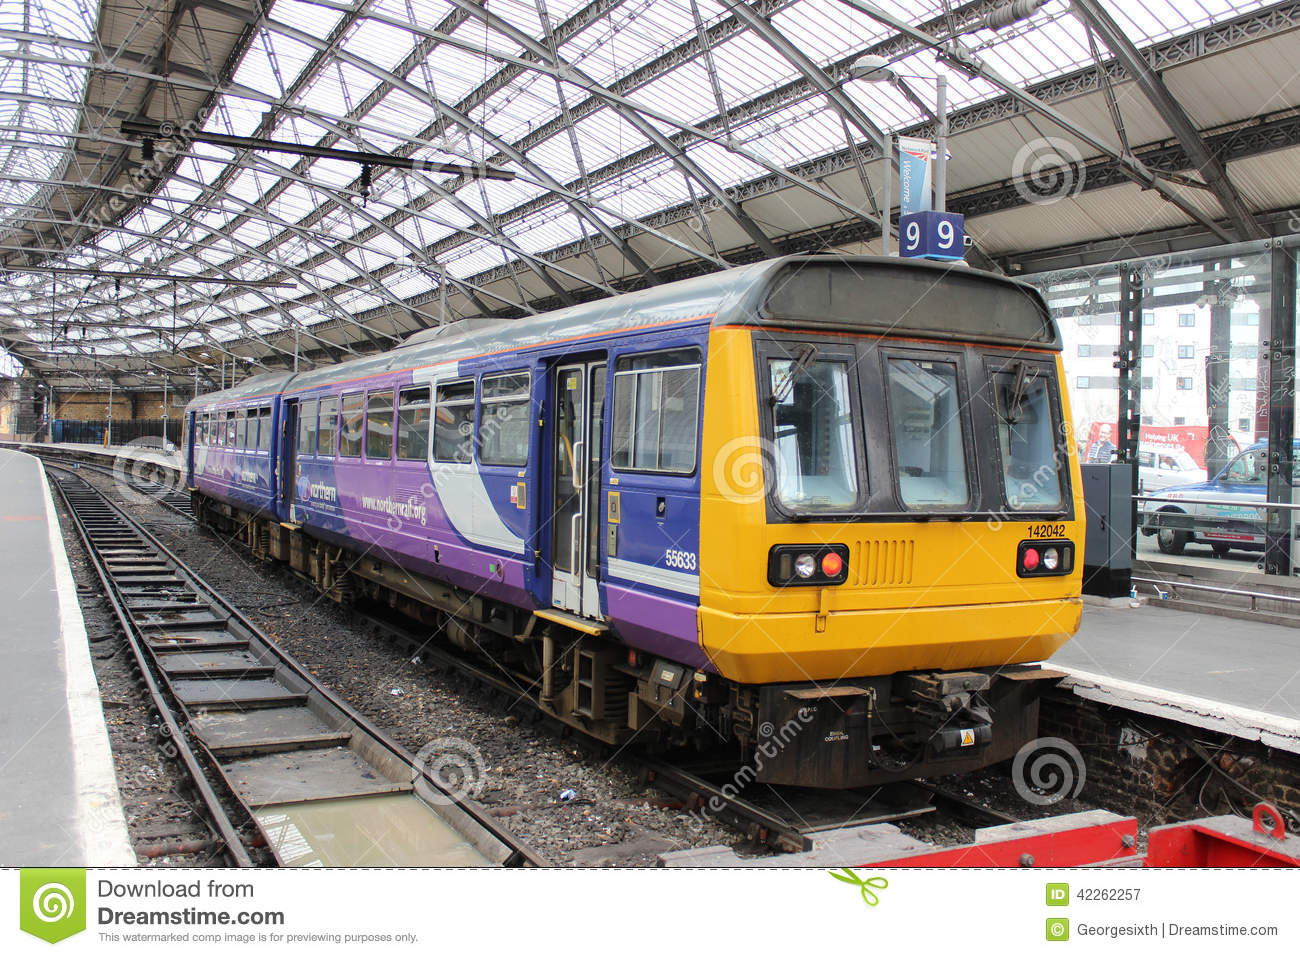 Class 142 Diesel Multiple Unit Train At Platform 9 In Liverpool Lime Street Railway Station Under The Curved Roof Of